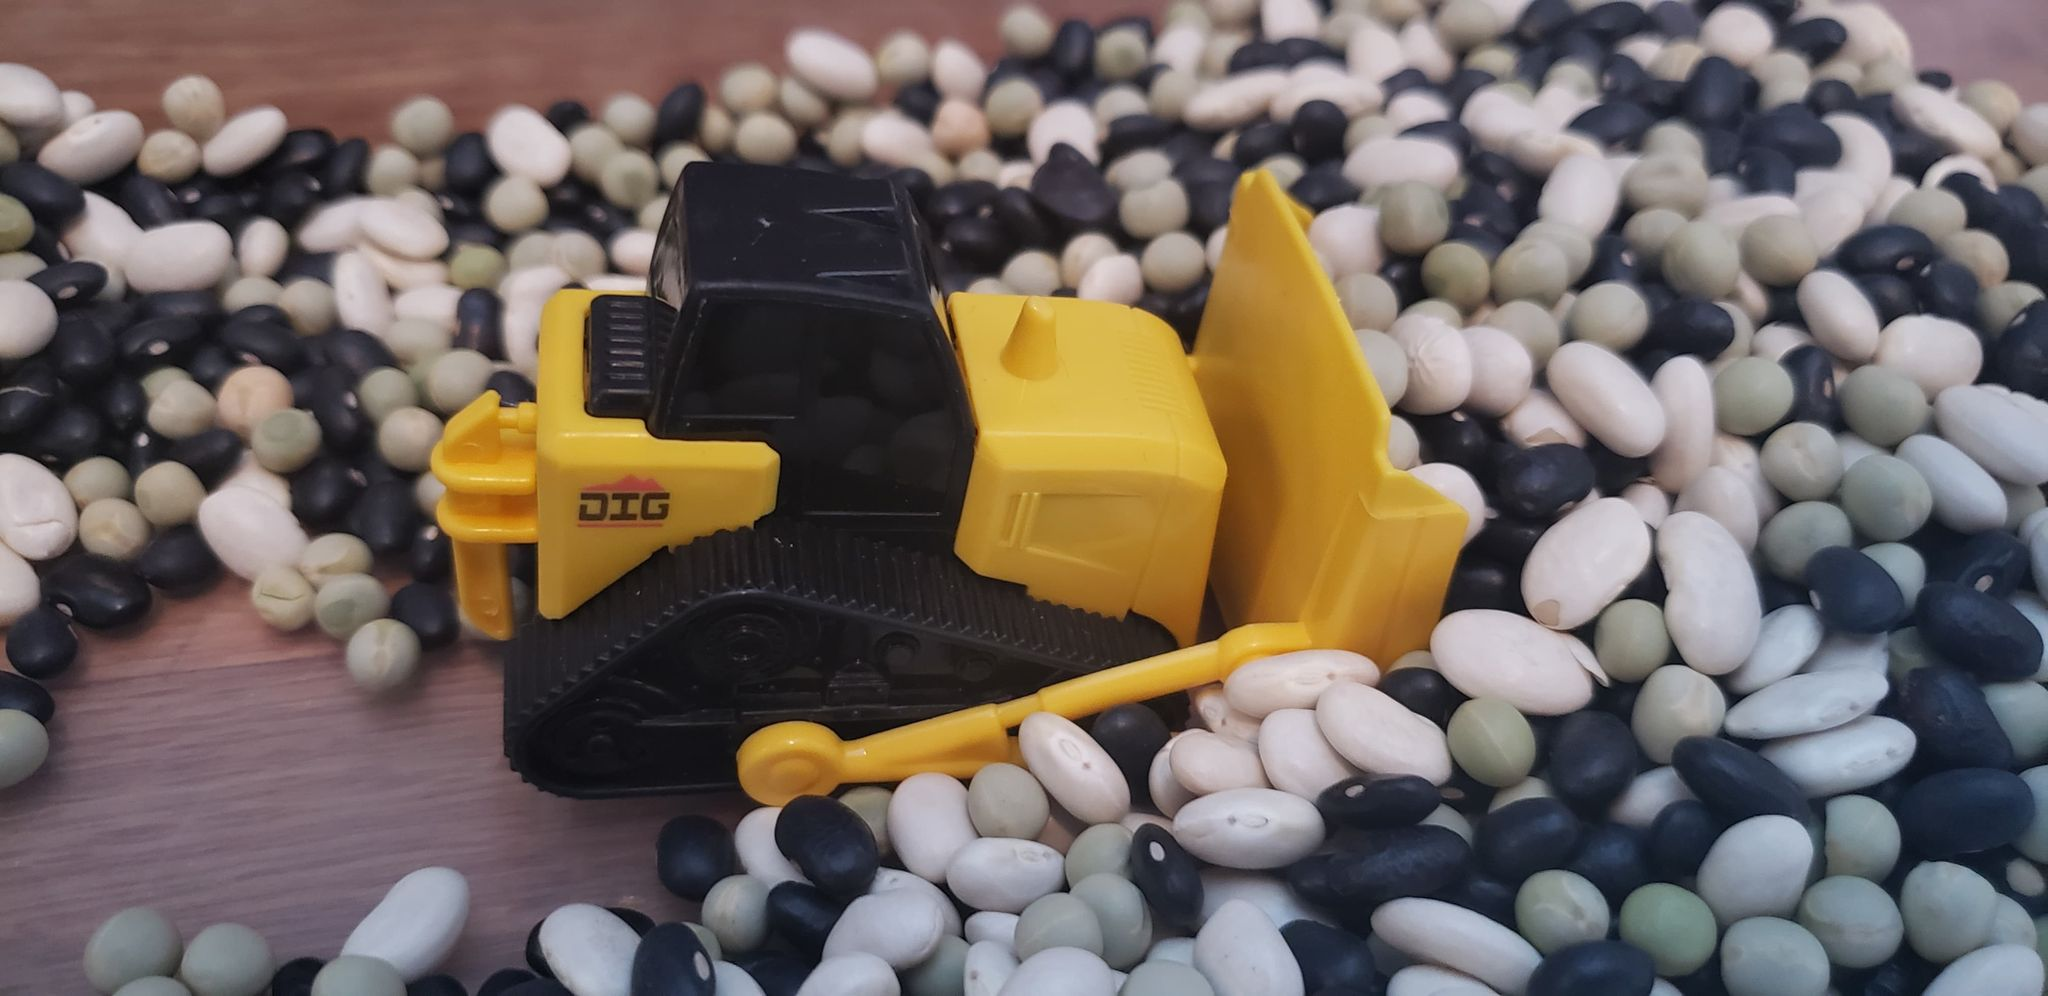 bulldozer in construction sensory bin filled with beans